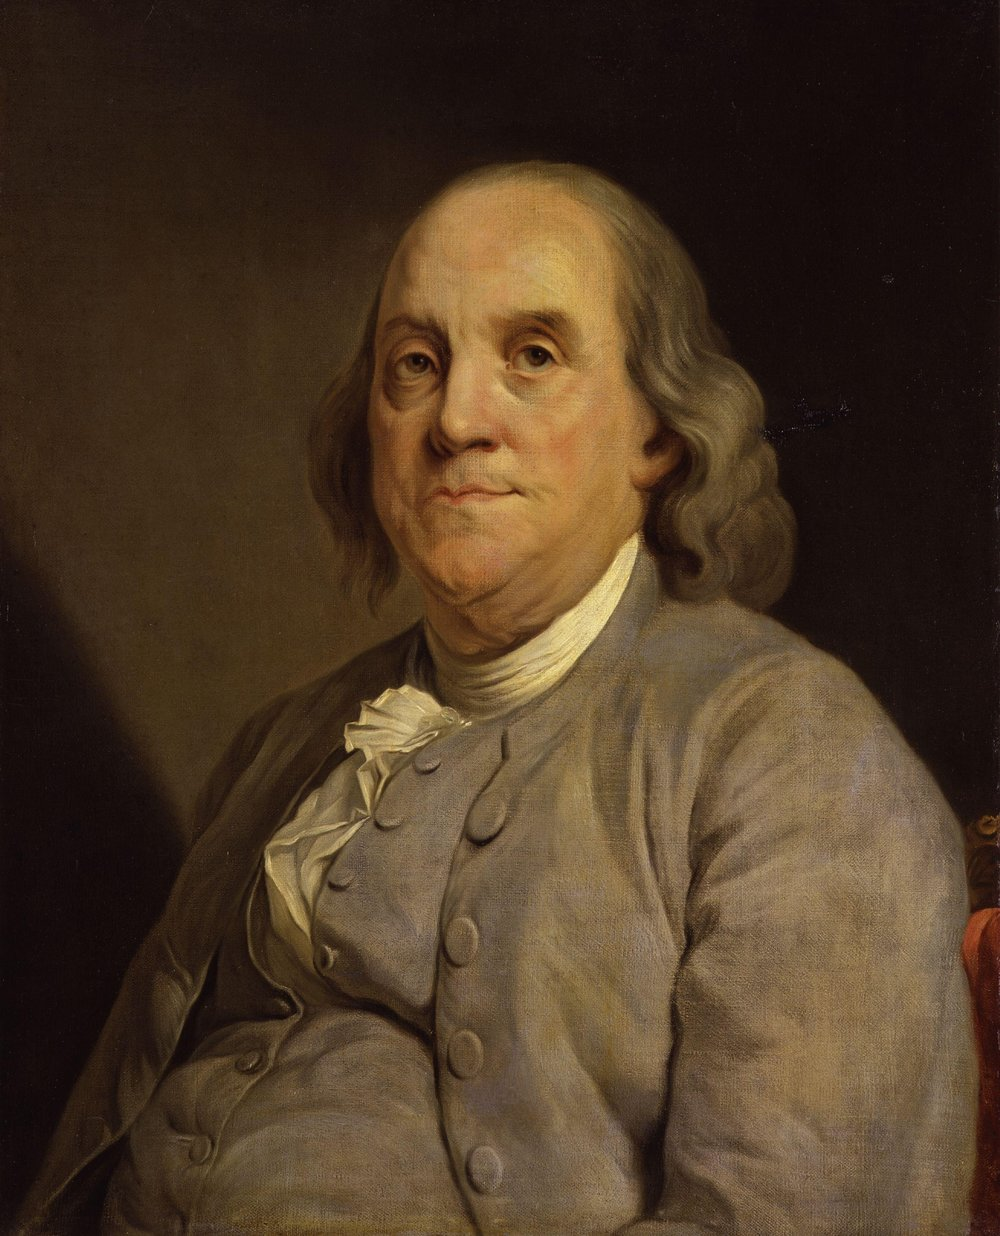 """Benjamin Franklin"" by Joseph Siffred Duplessis licensed under CC BY 2.0"